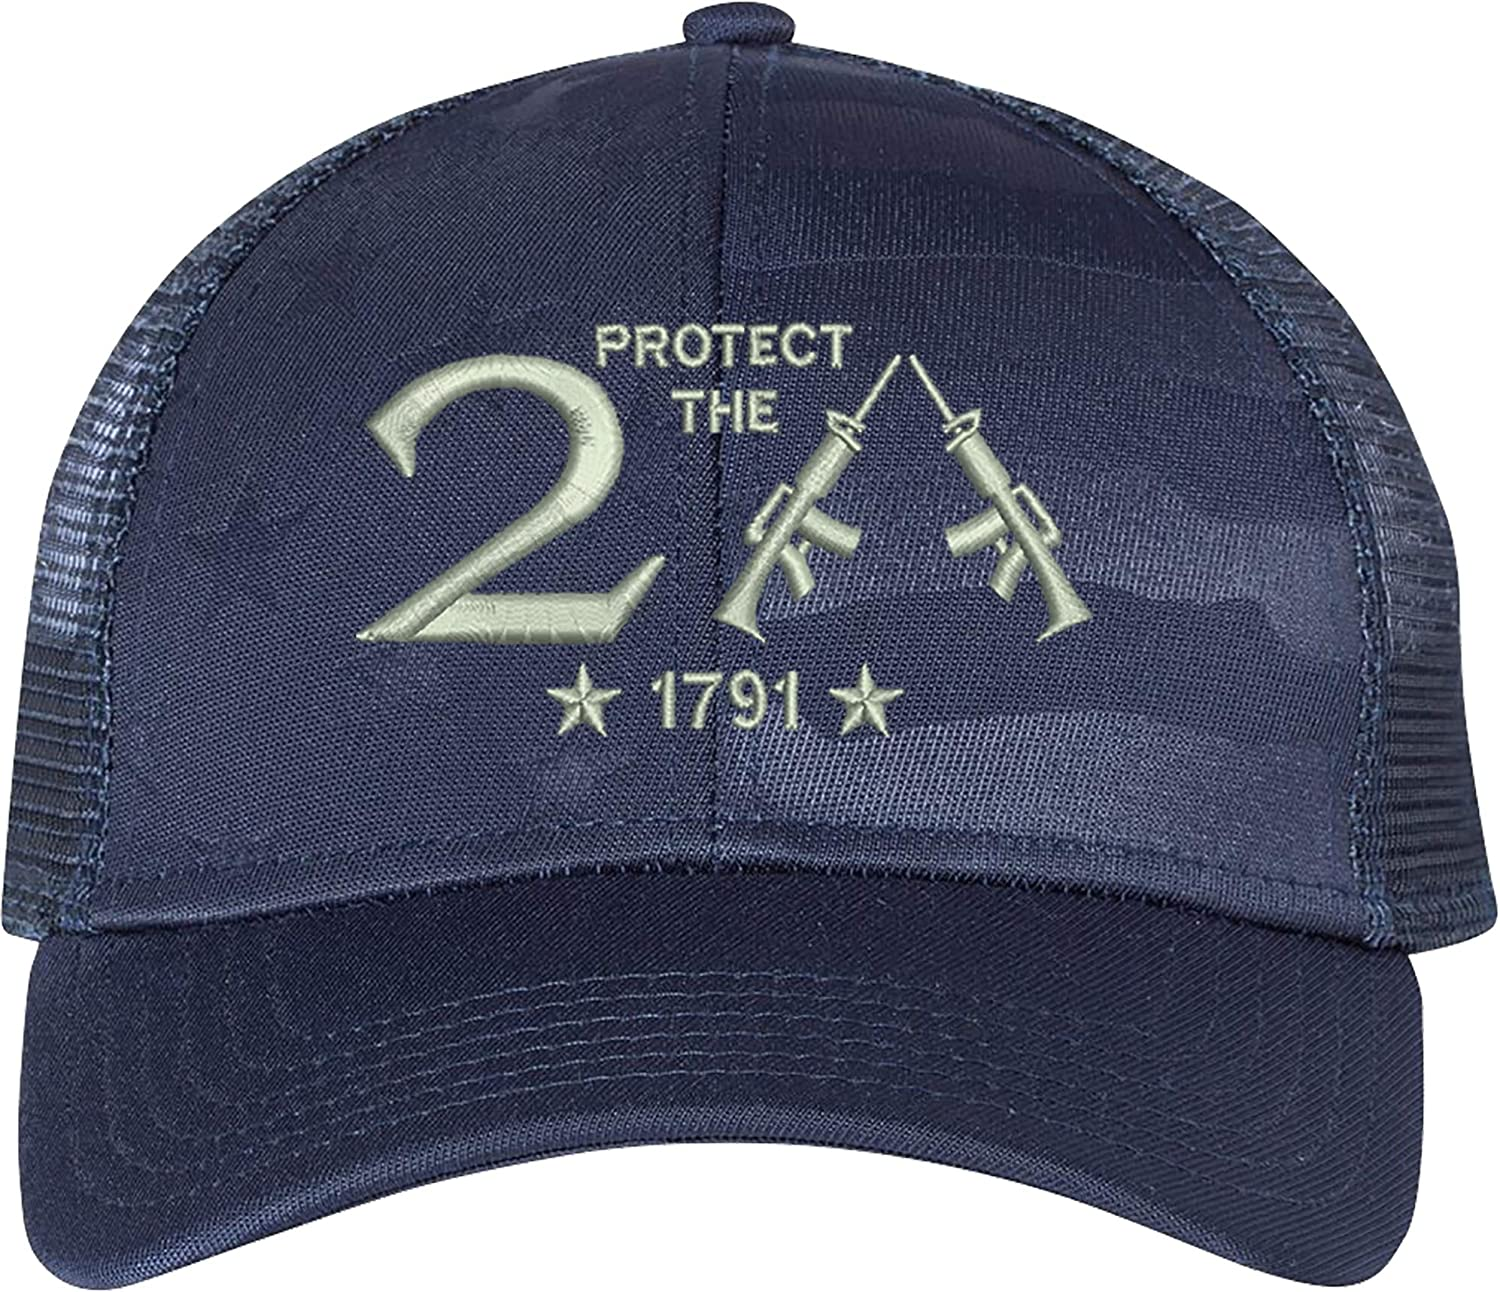 AmazingShirts Protect The 2nd Amendment 1791 AR15 Guns Right Freedom Embroidered One Size Fits All Structured Hats